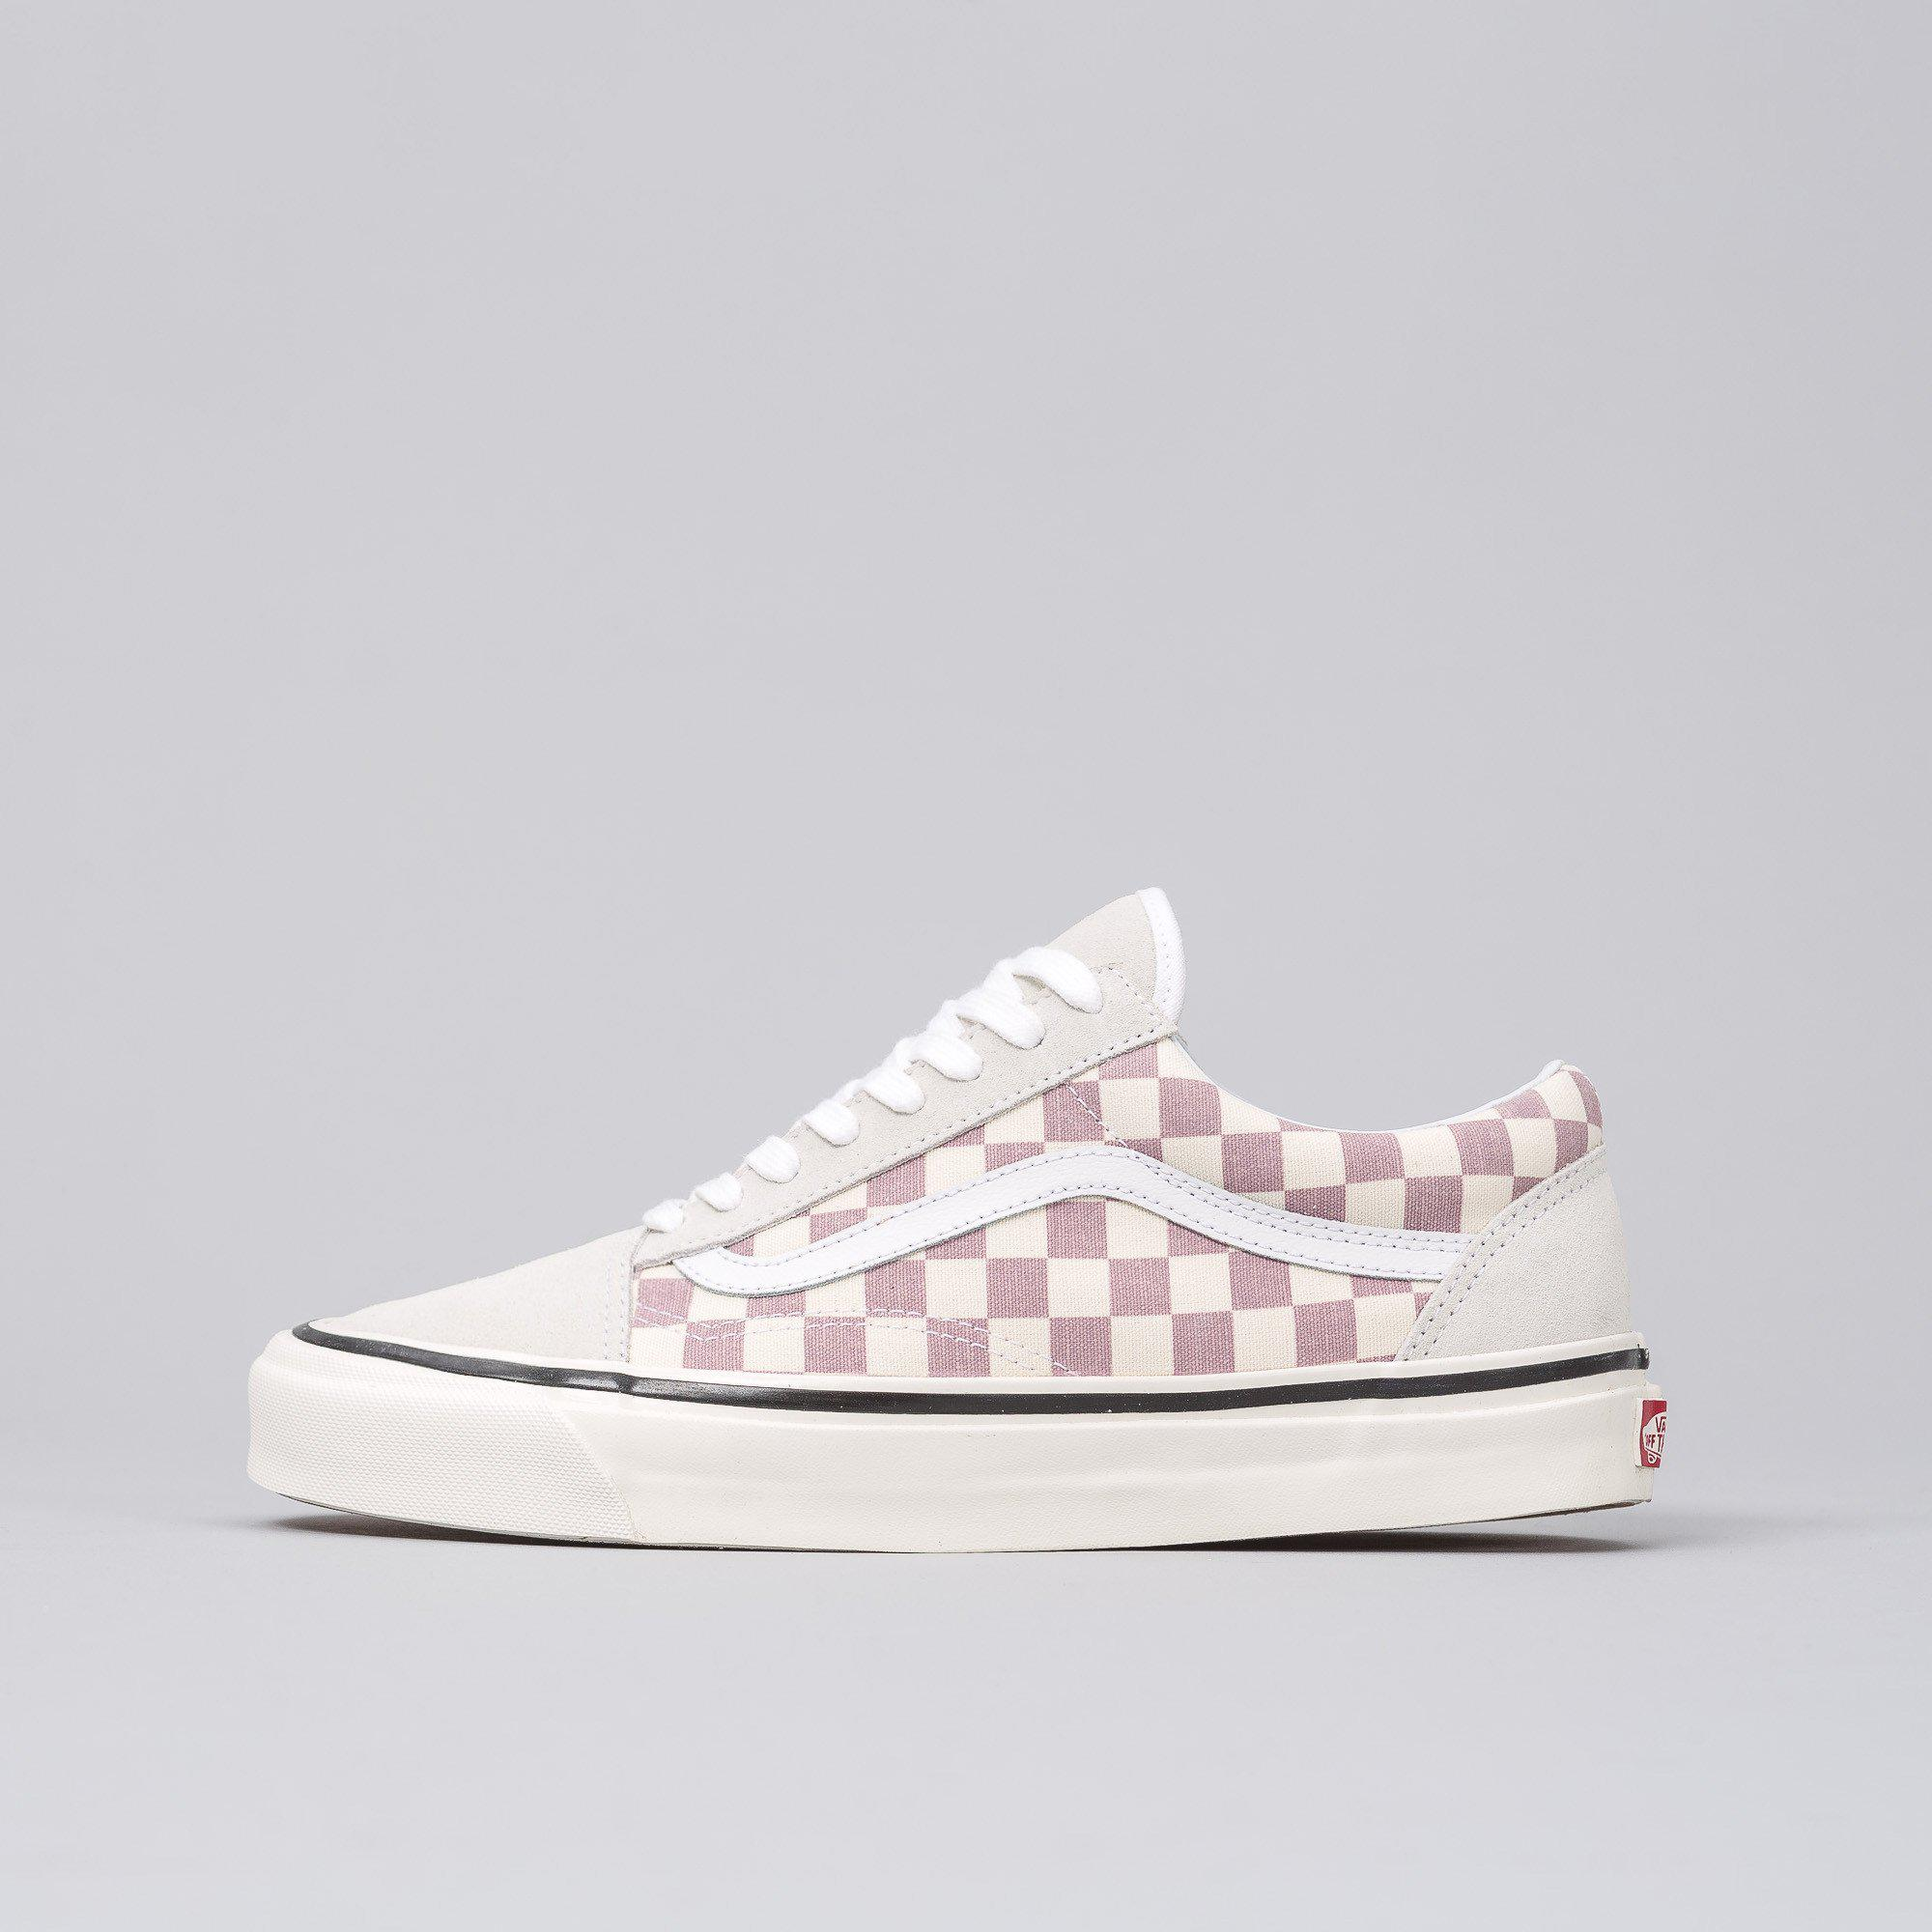 Lyst - Vans Old Skool 36 Dx Anaheim Factory In Purple Checkerboard ... cf1f7cf12